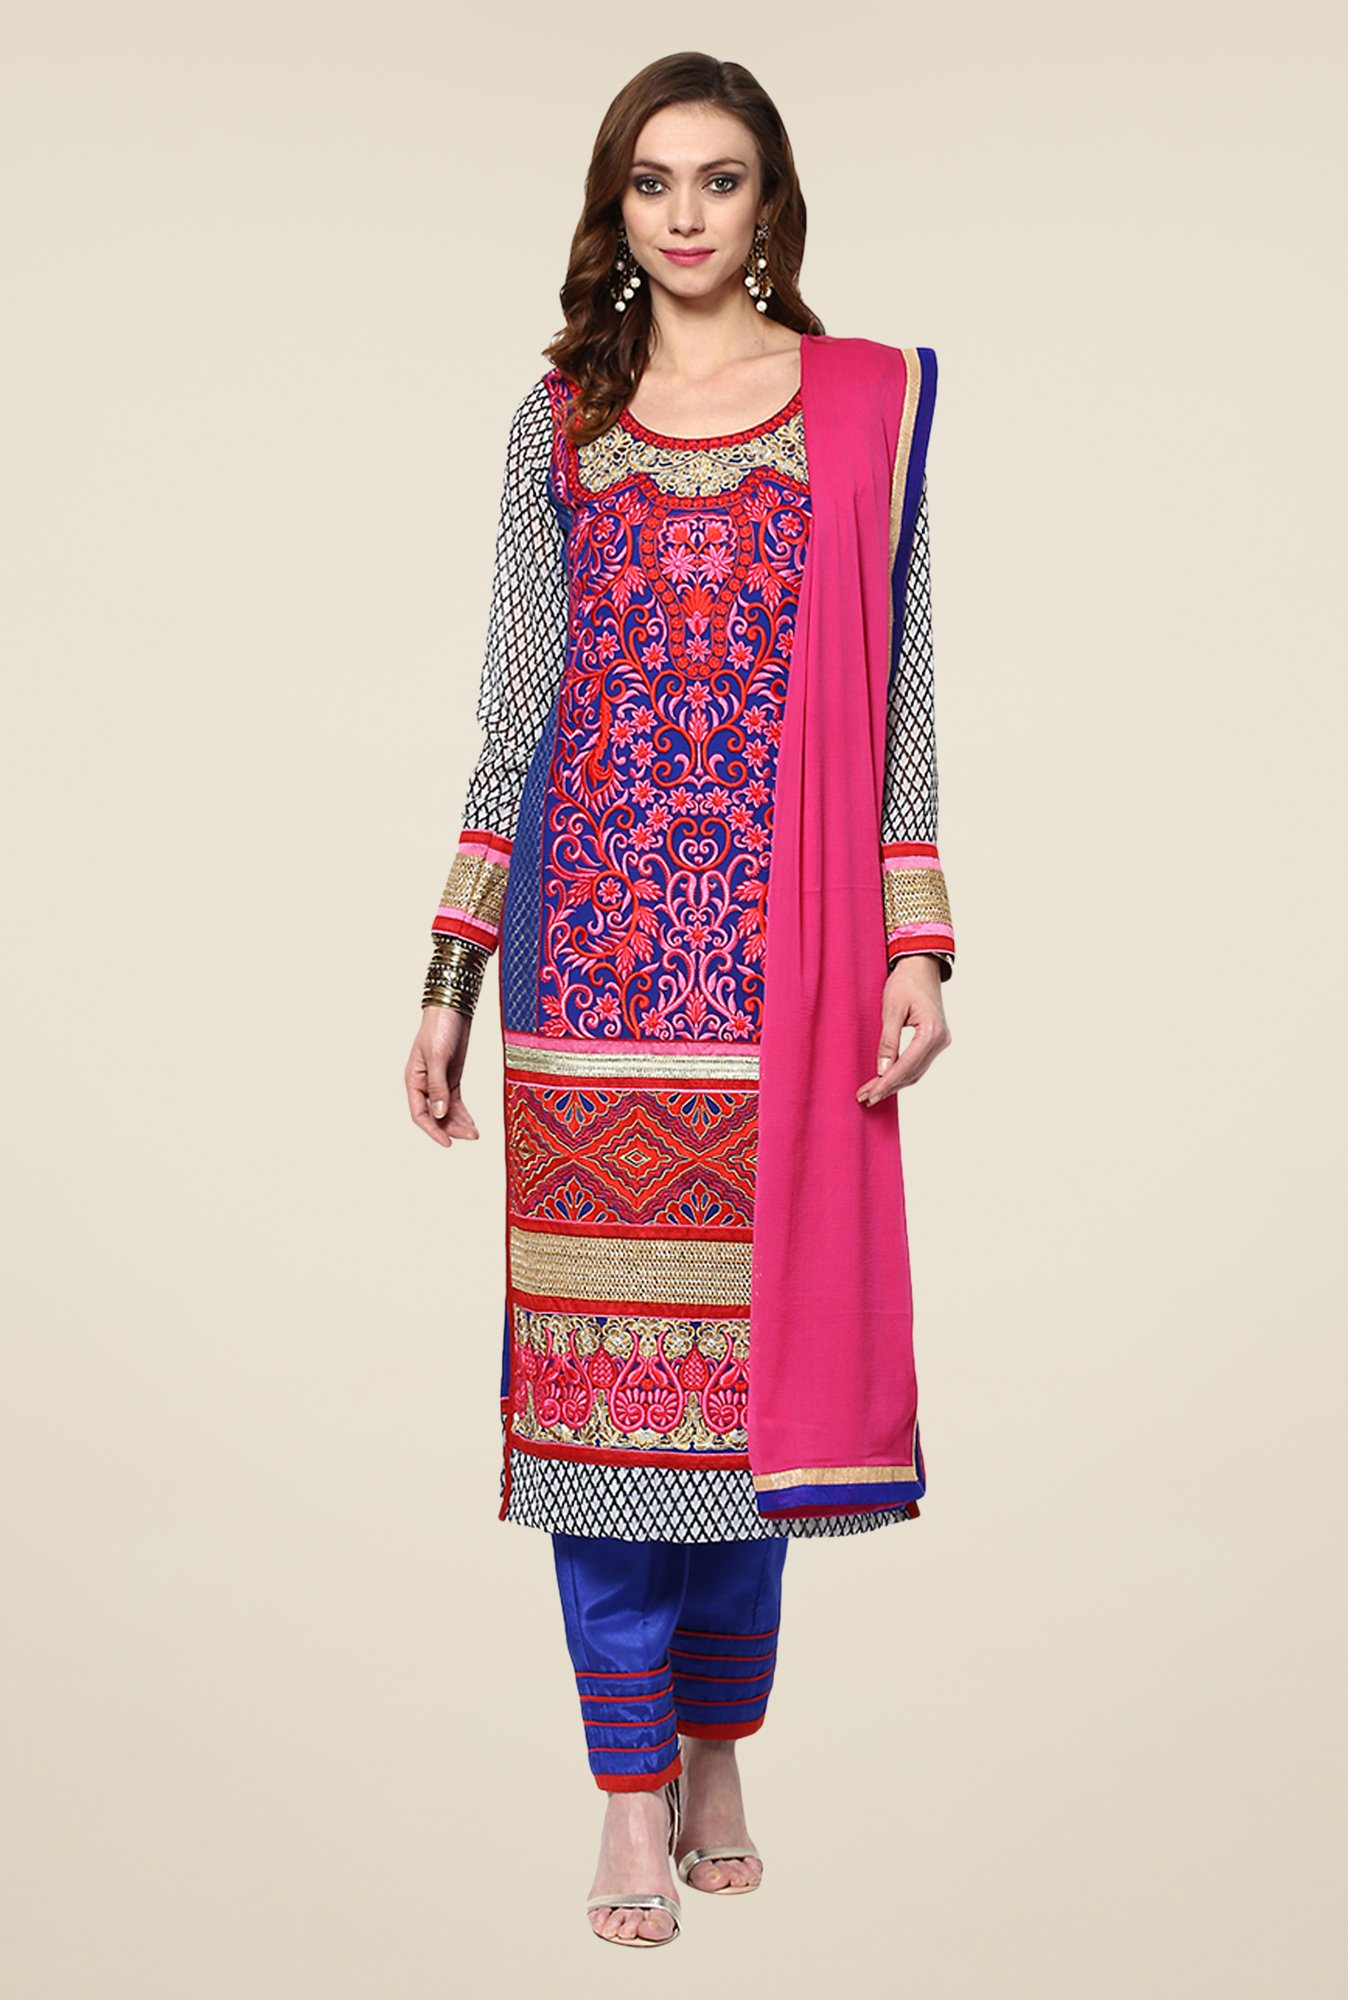 Yepme Blue & Pink Ulrika Semi Stitched Suit Set